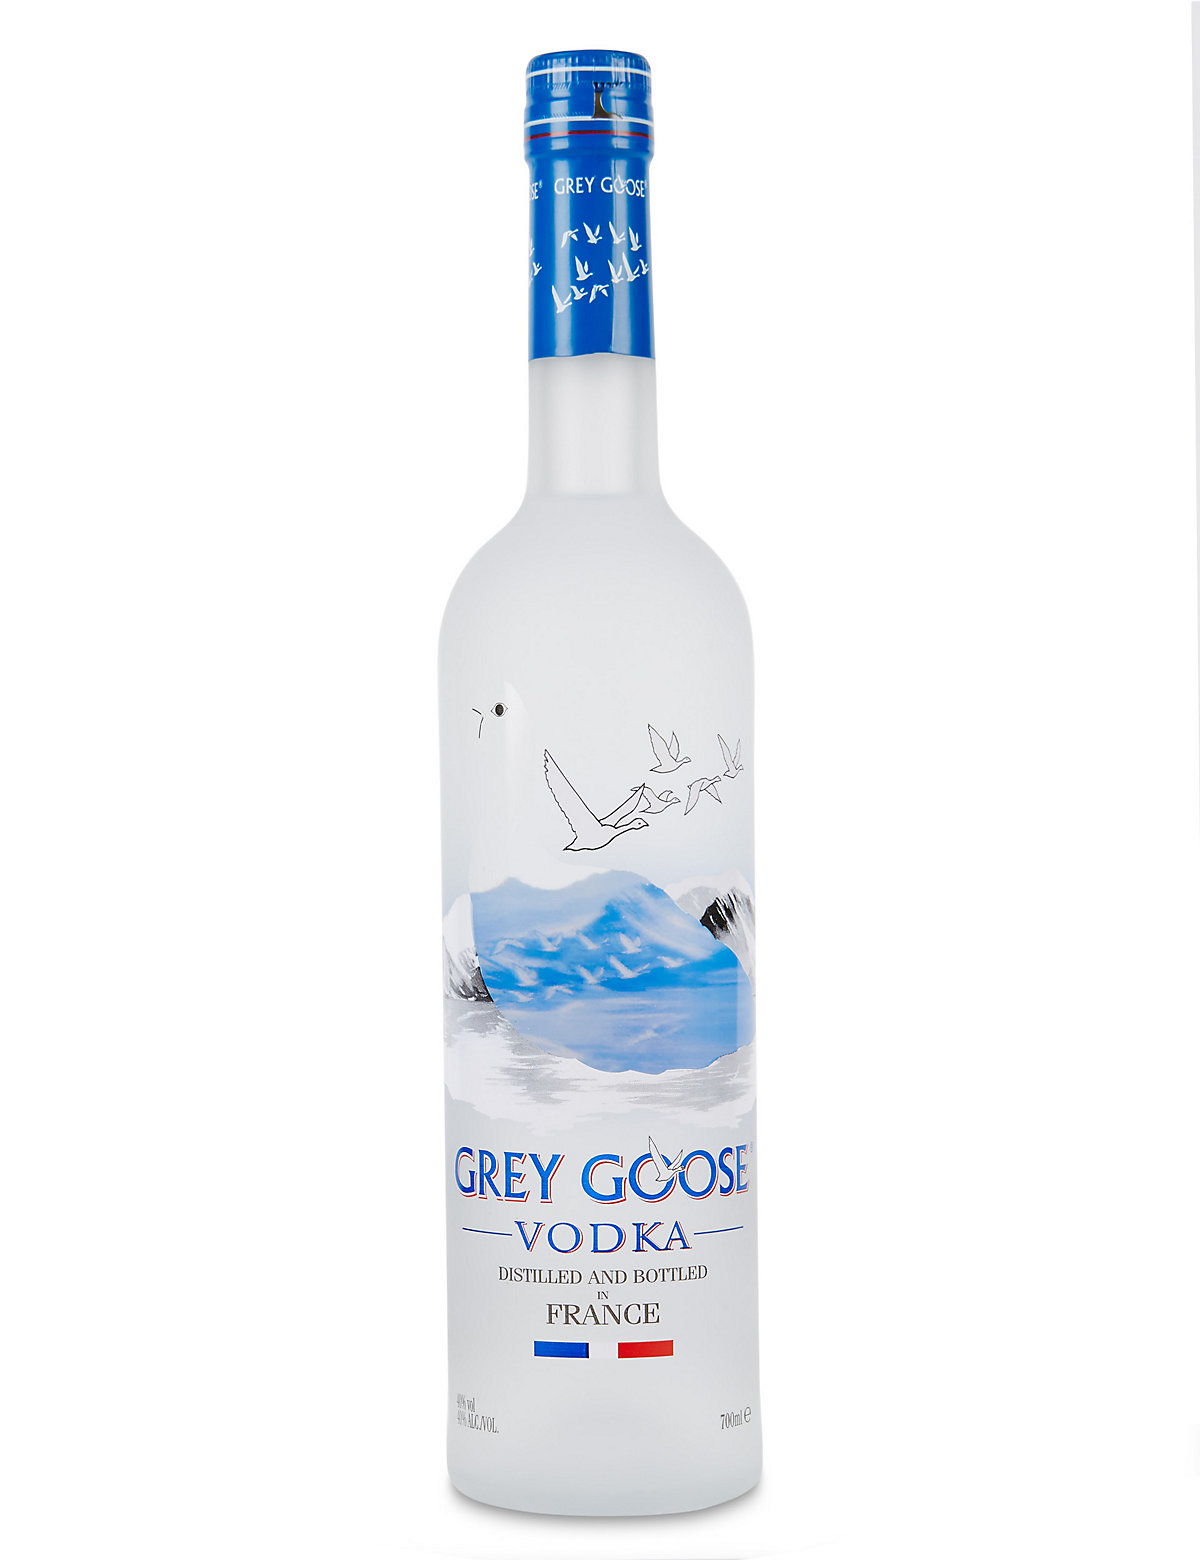 Grey Goose Grey Goose Vodka  Single Bottle